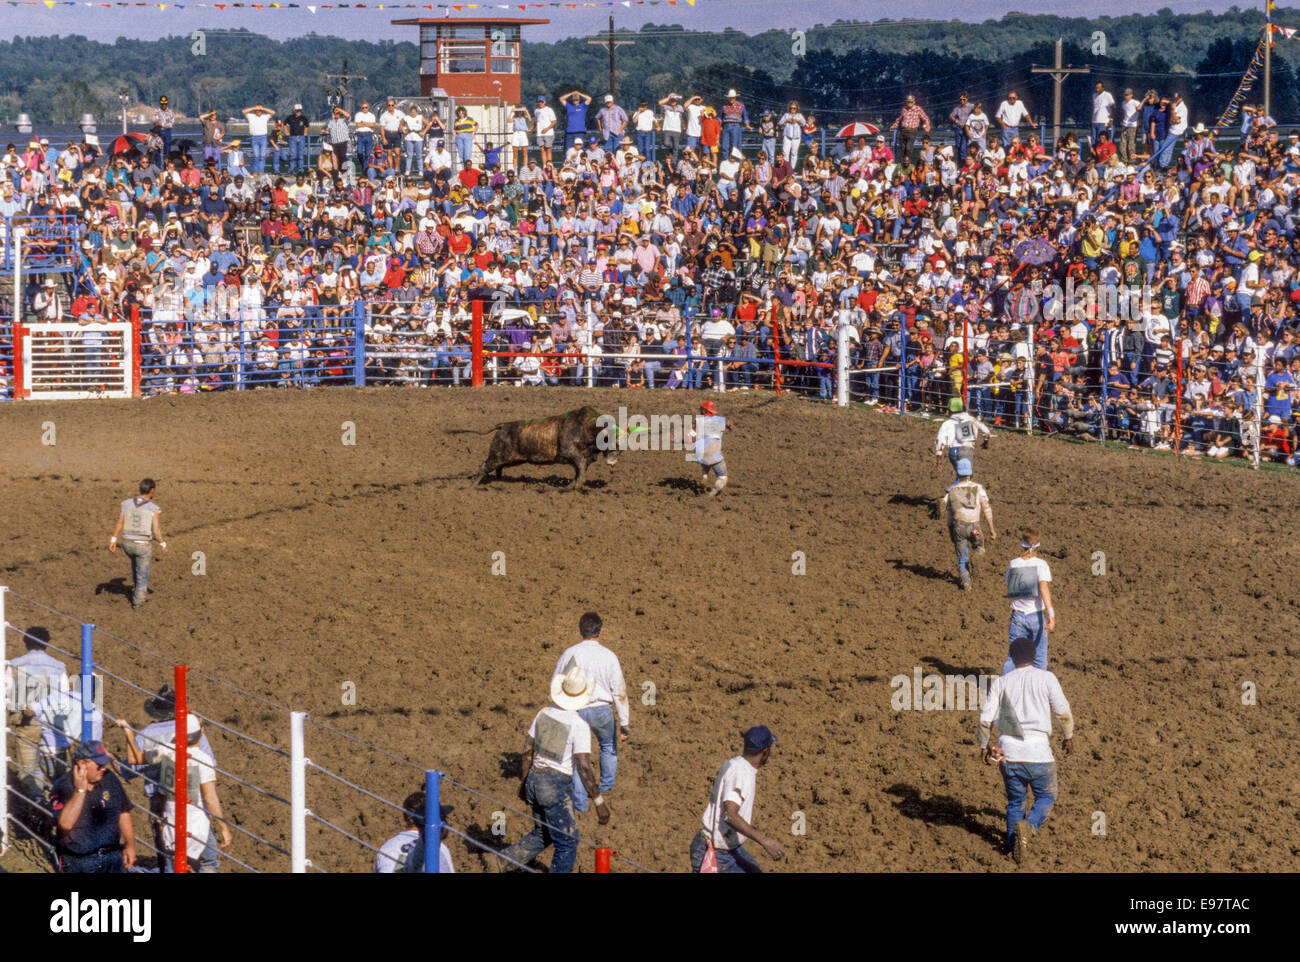 ANGOLA, LA – JANUARY1:  The annual Angola Prison Rodeo is held in Angola, Louisiana in January 01, 1995. - Stock Image